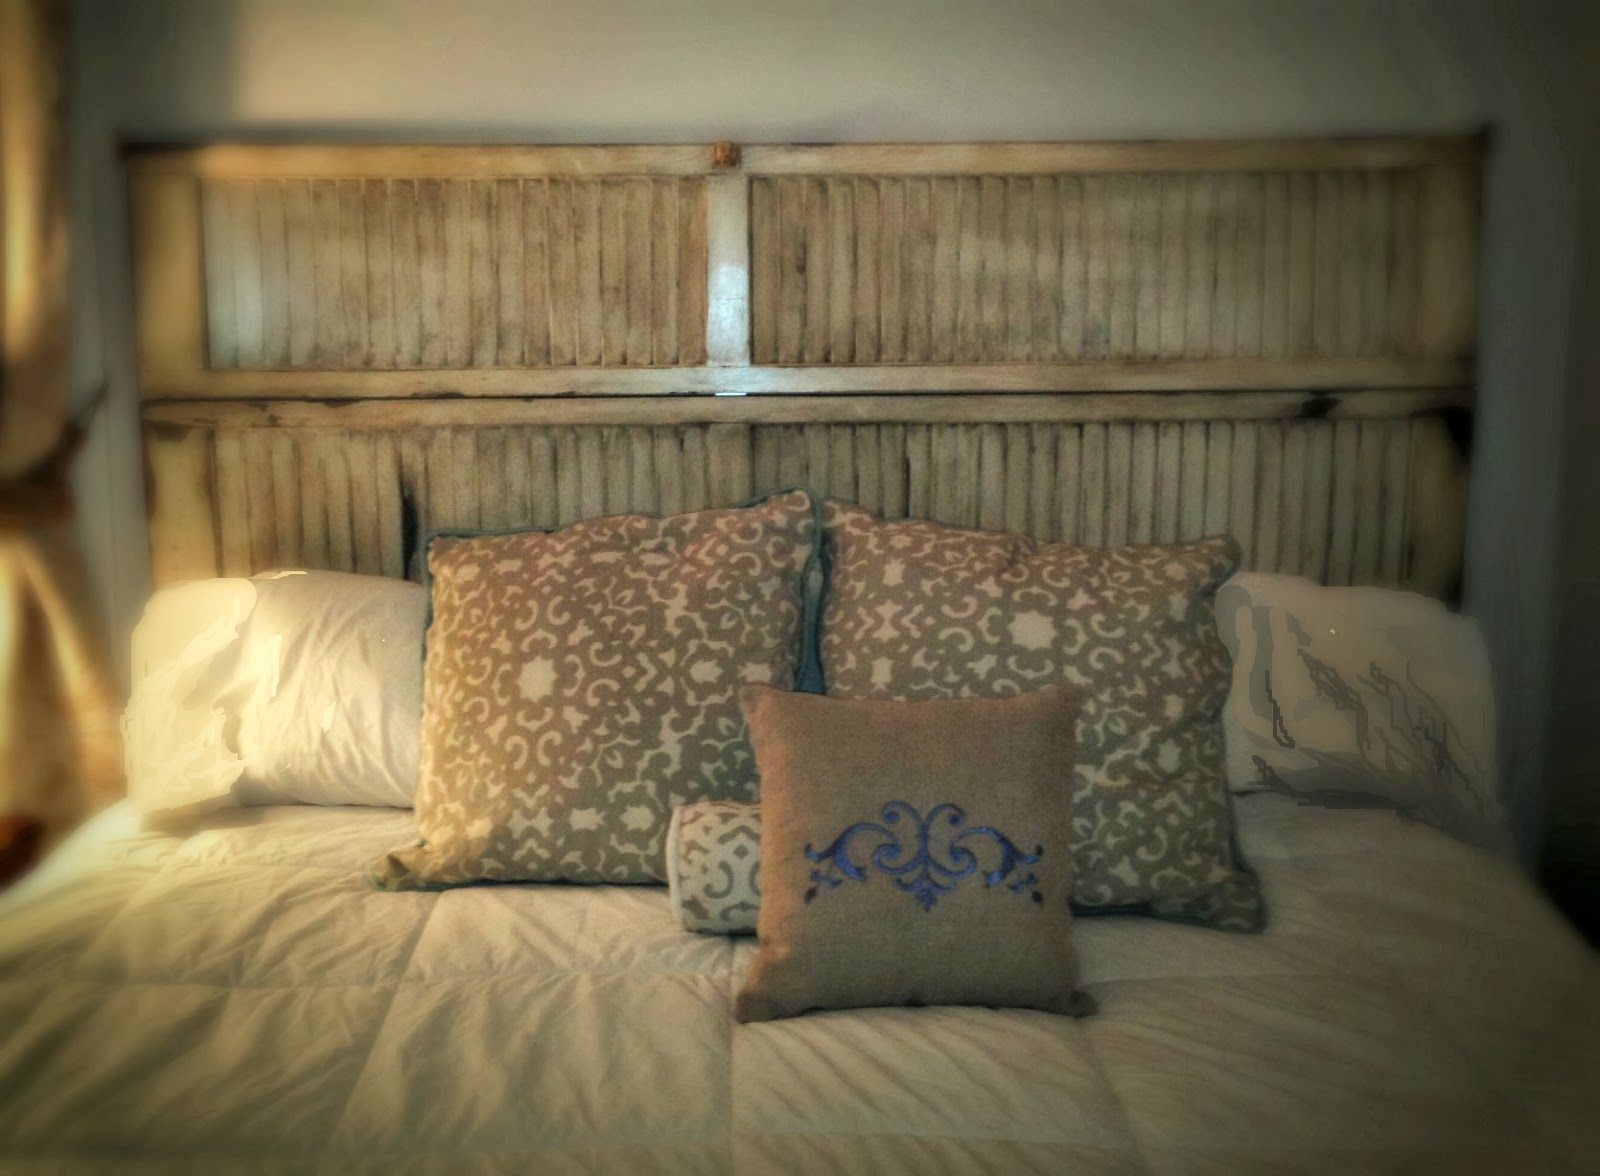 sheshe, the home magician: headboard made from an old louvered